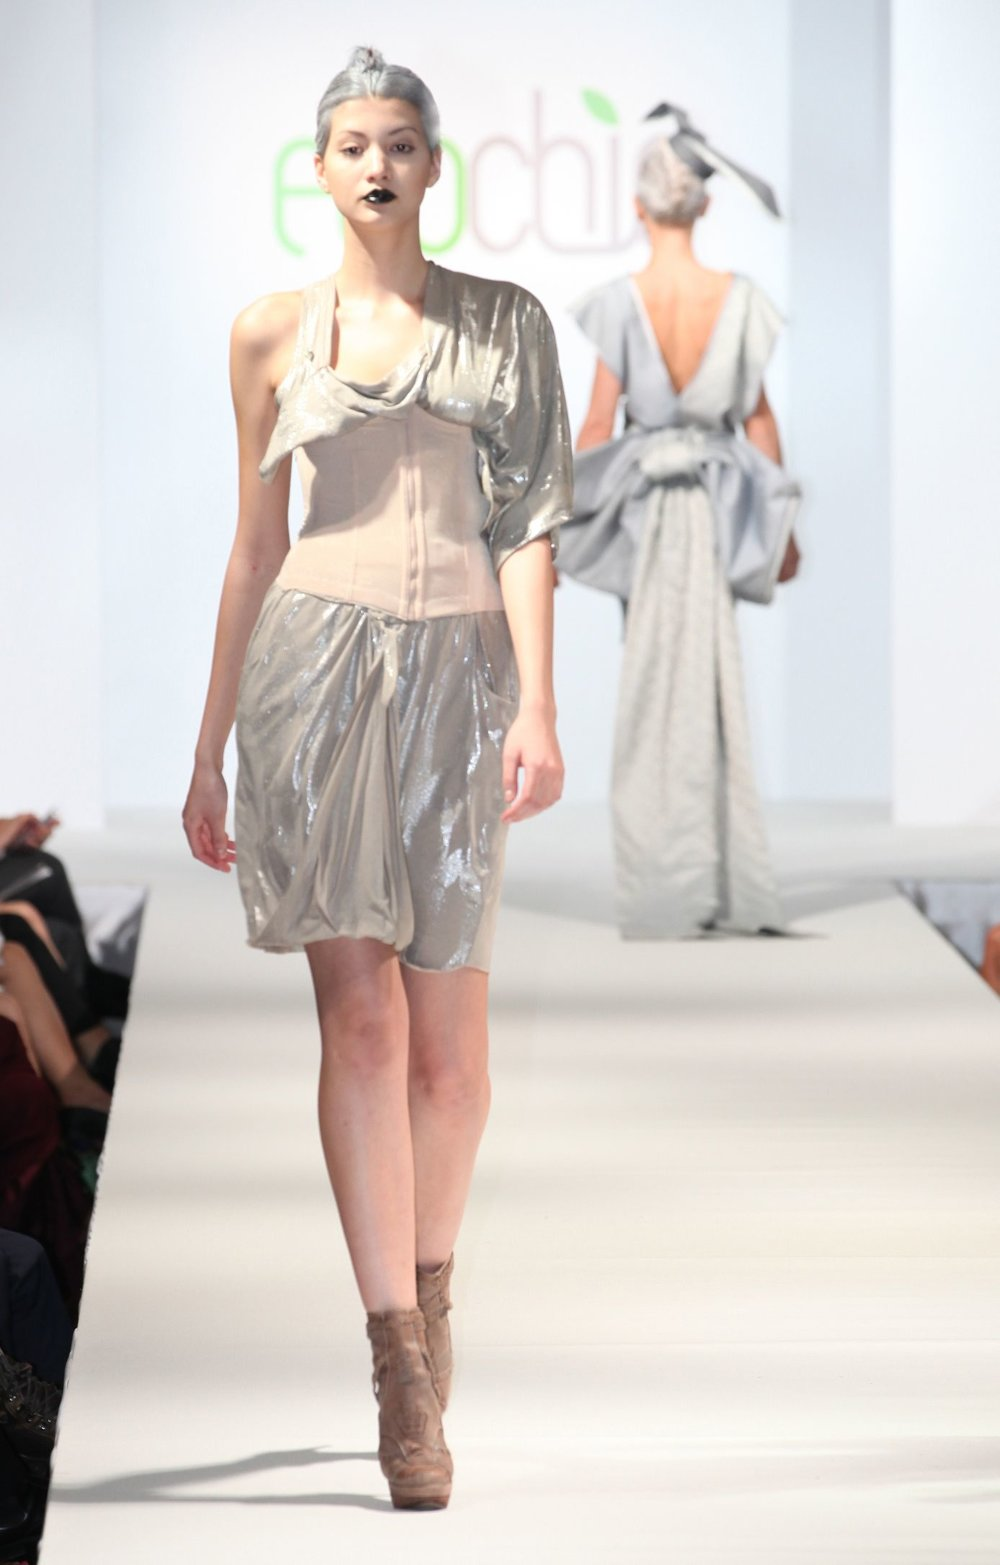 _Eco Ready to Wear Ciel silver top and skirt made from recycled pre-consumer material.jpg